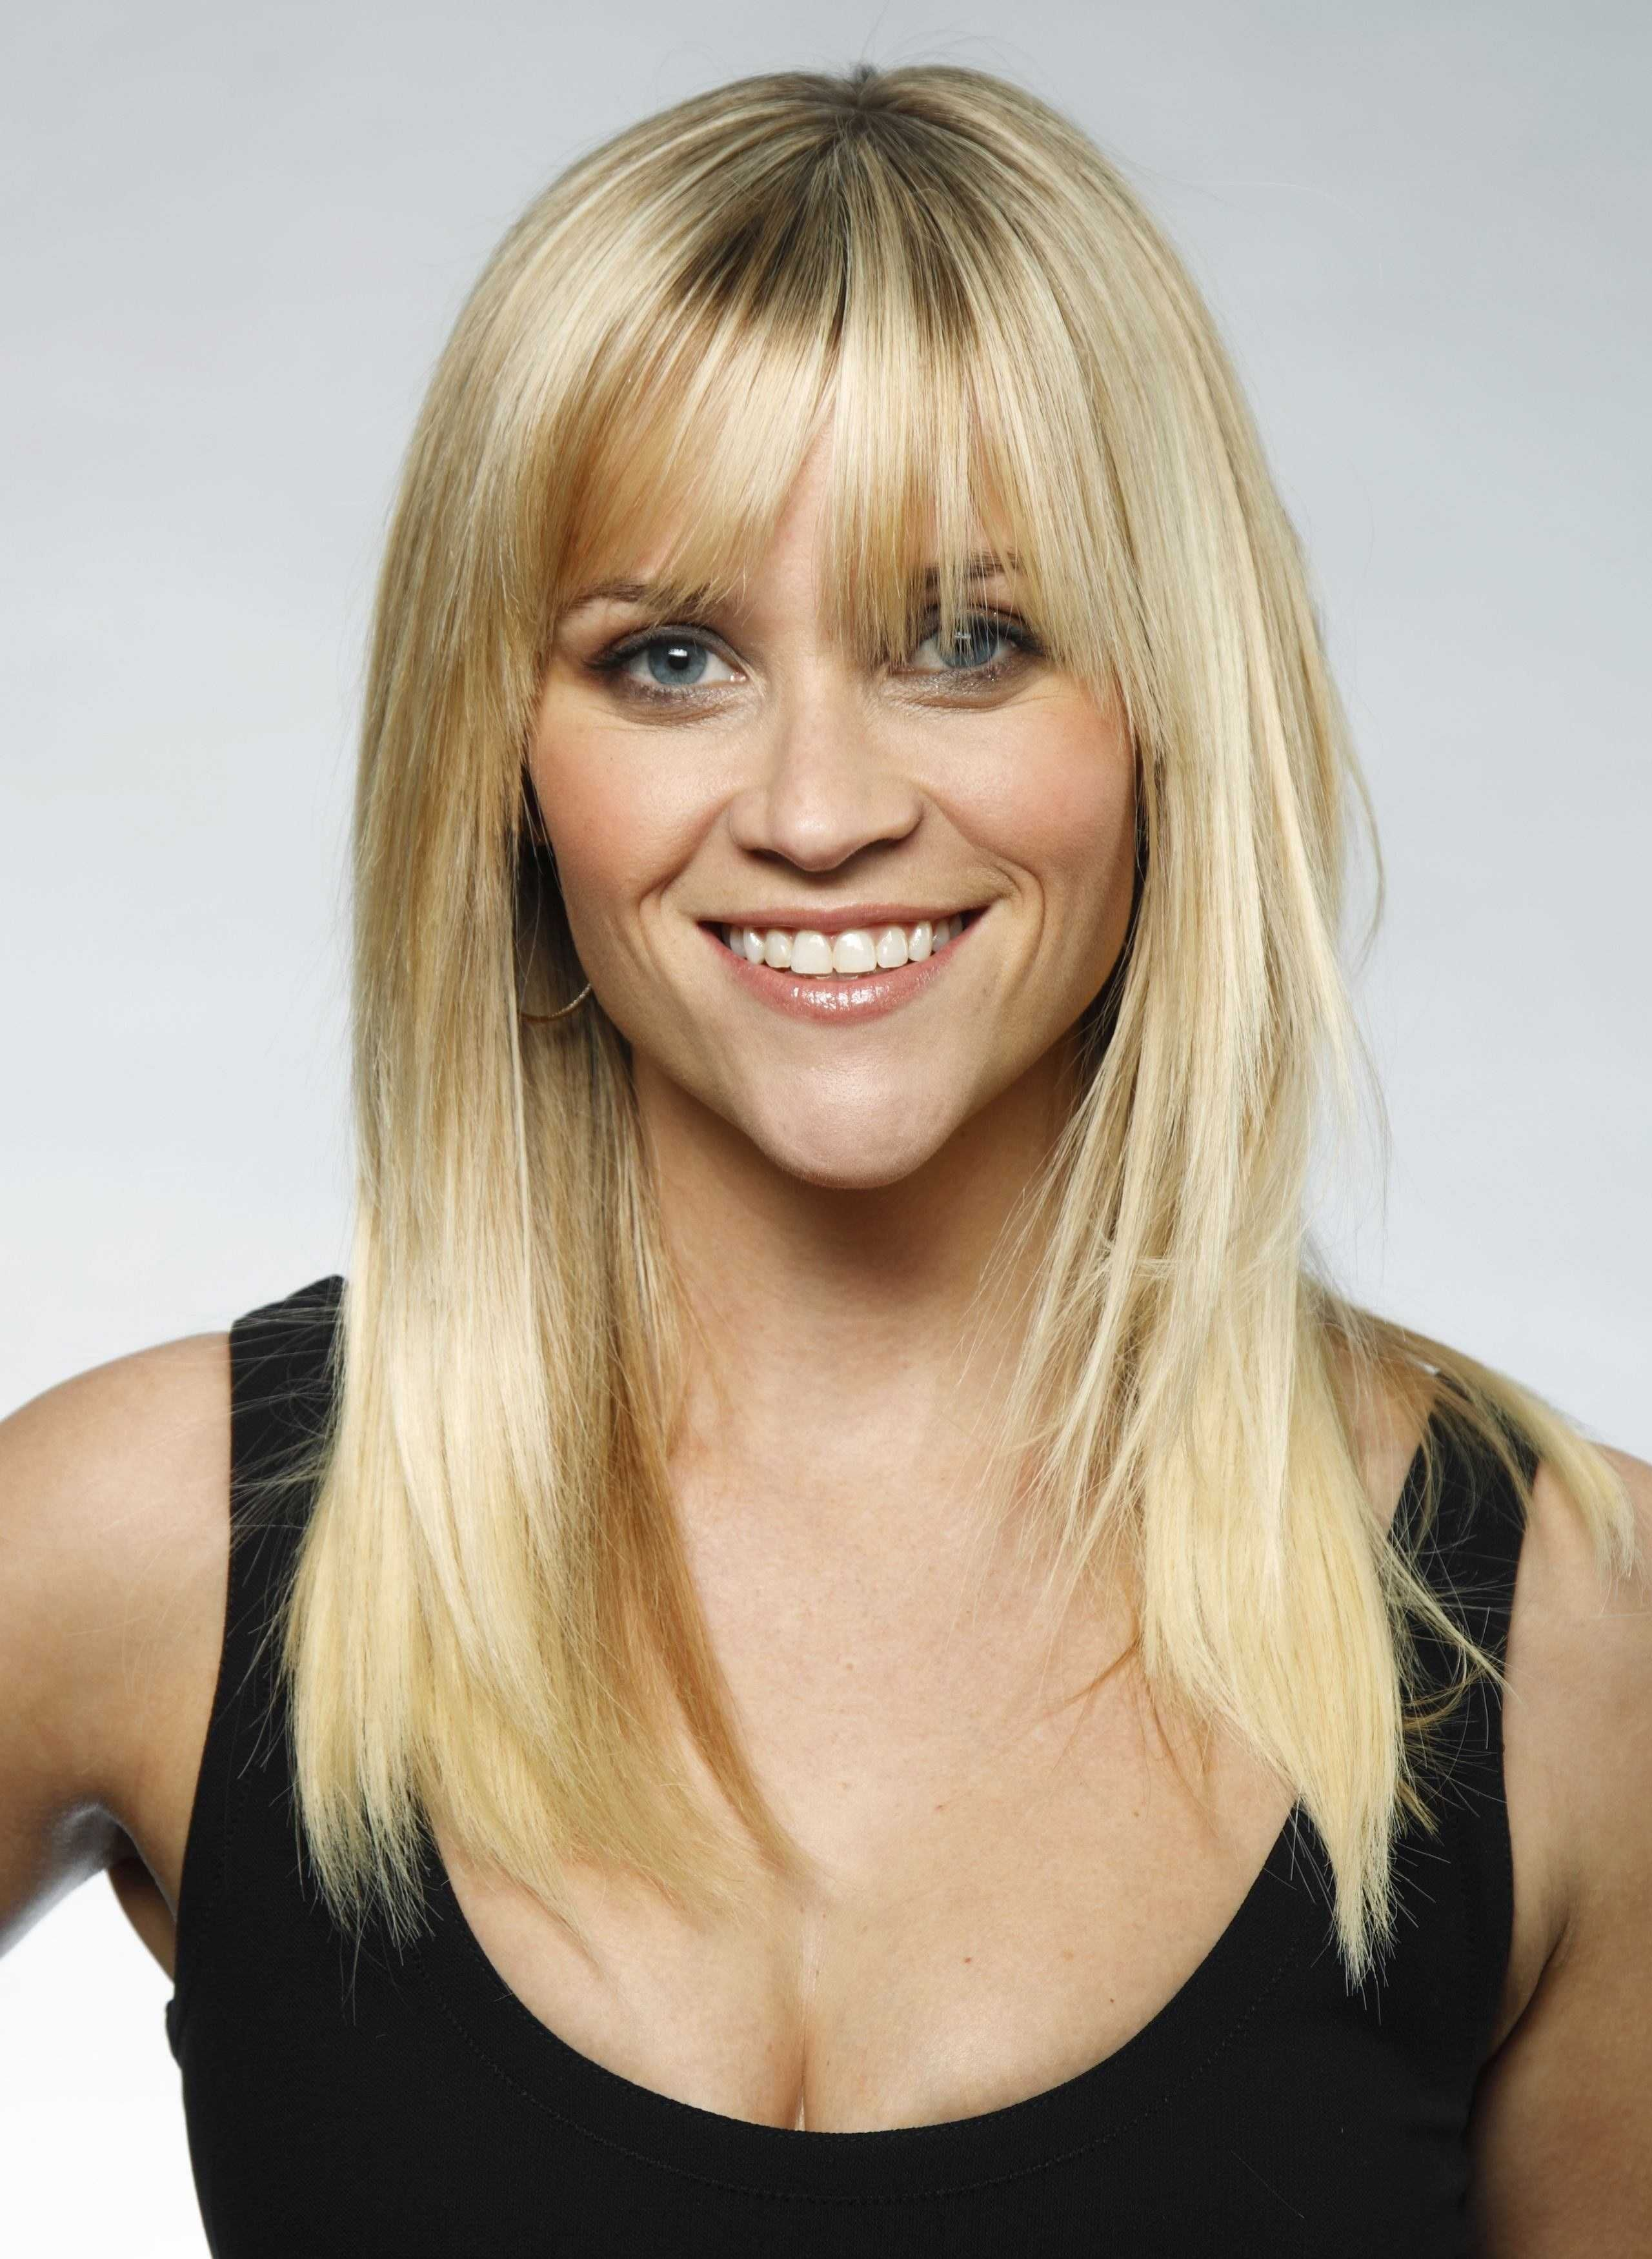 Laura Jeanne Reese Witherspoon was born on March 22 1976 at